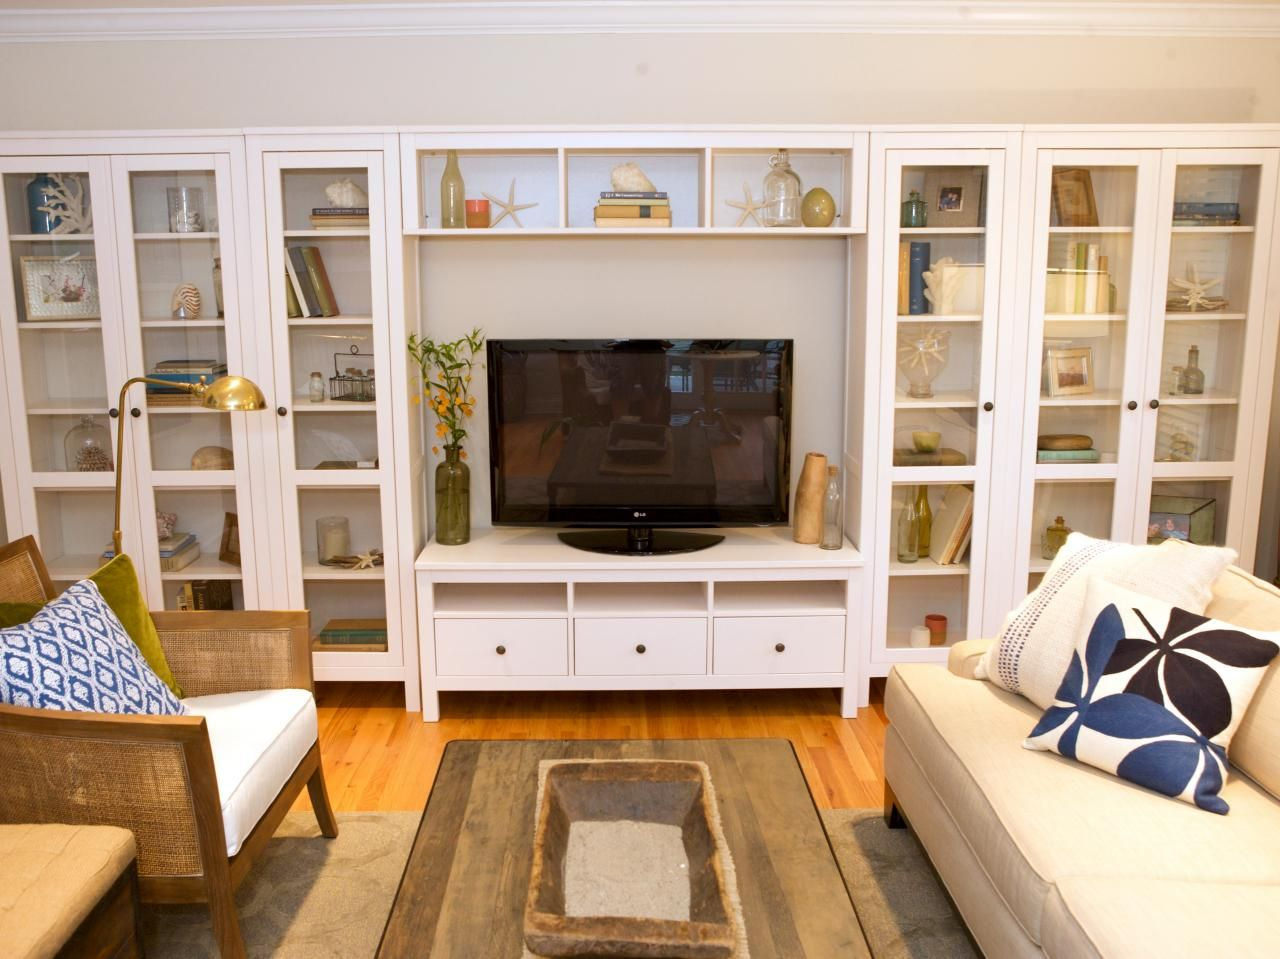 10 Beautiful Built Ins And Shelving Design Ideas | Home Remodeling   Ideas  For Basements